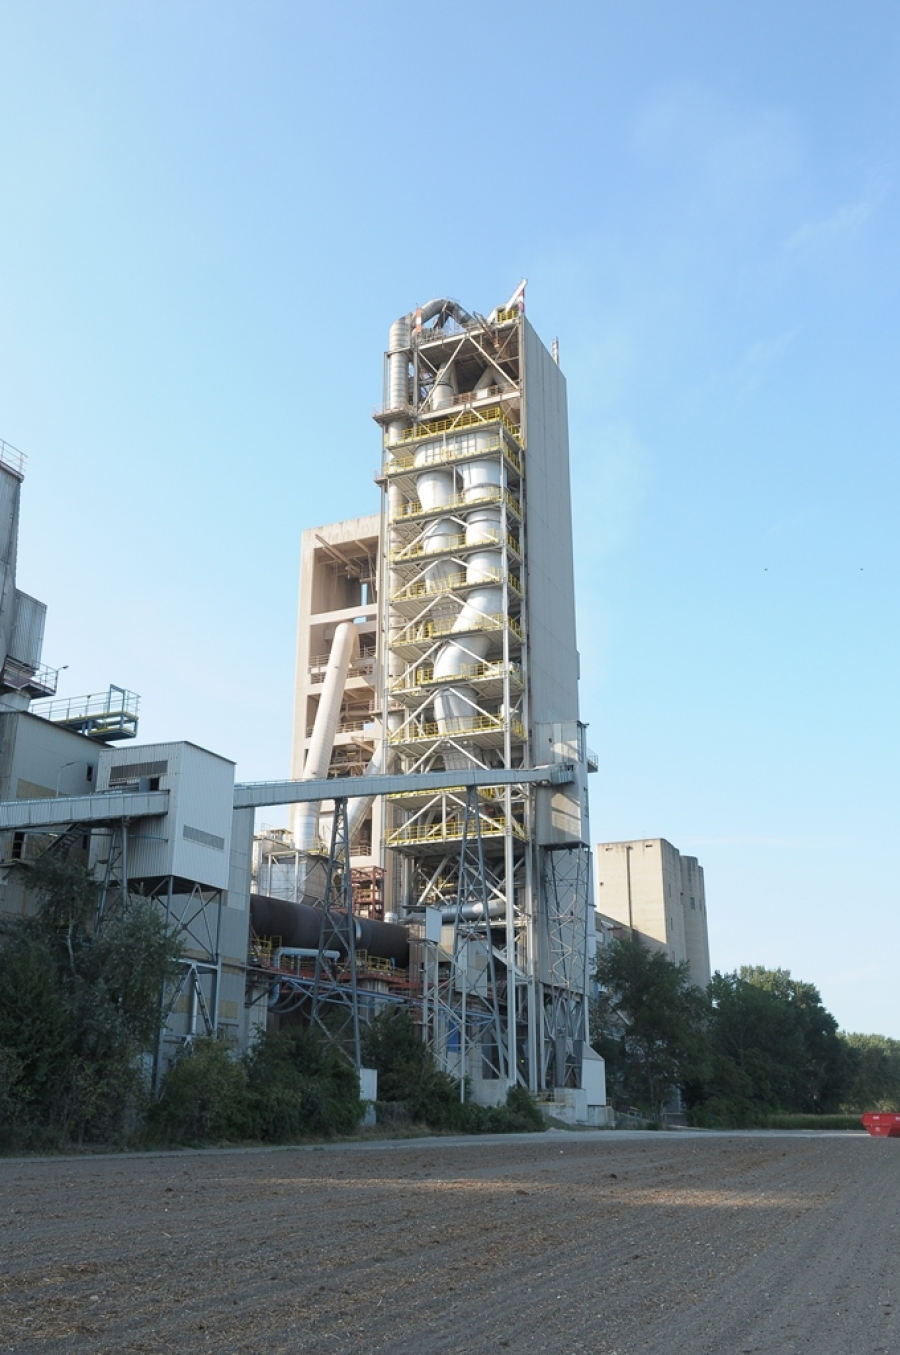 Mannersdorf kiln line with A TEC's in-line calciner in the front of the preheater